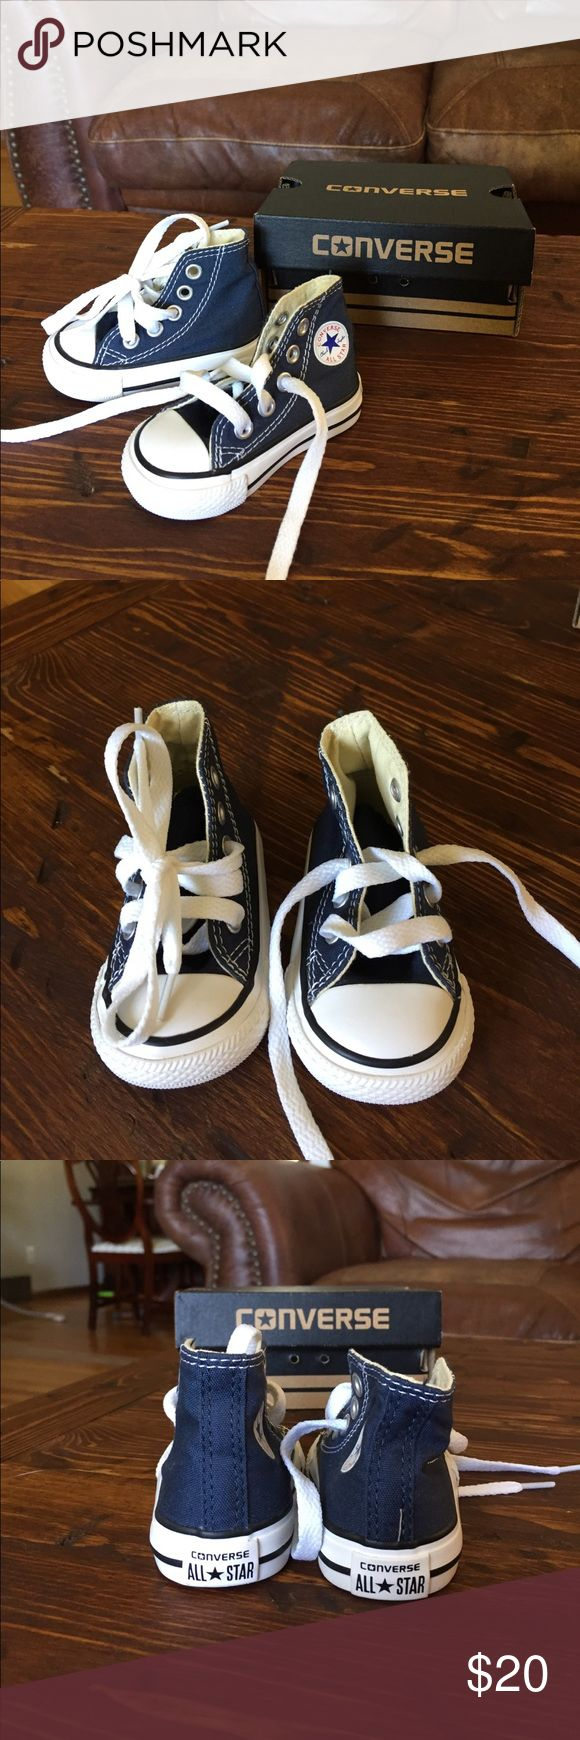 New Baby Navy Converse High tops Size 2 Navy blue Converse shoes size 2 Brand New still in the box. Converse Shoes Sneakers